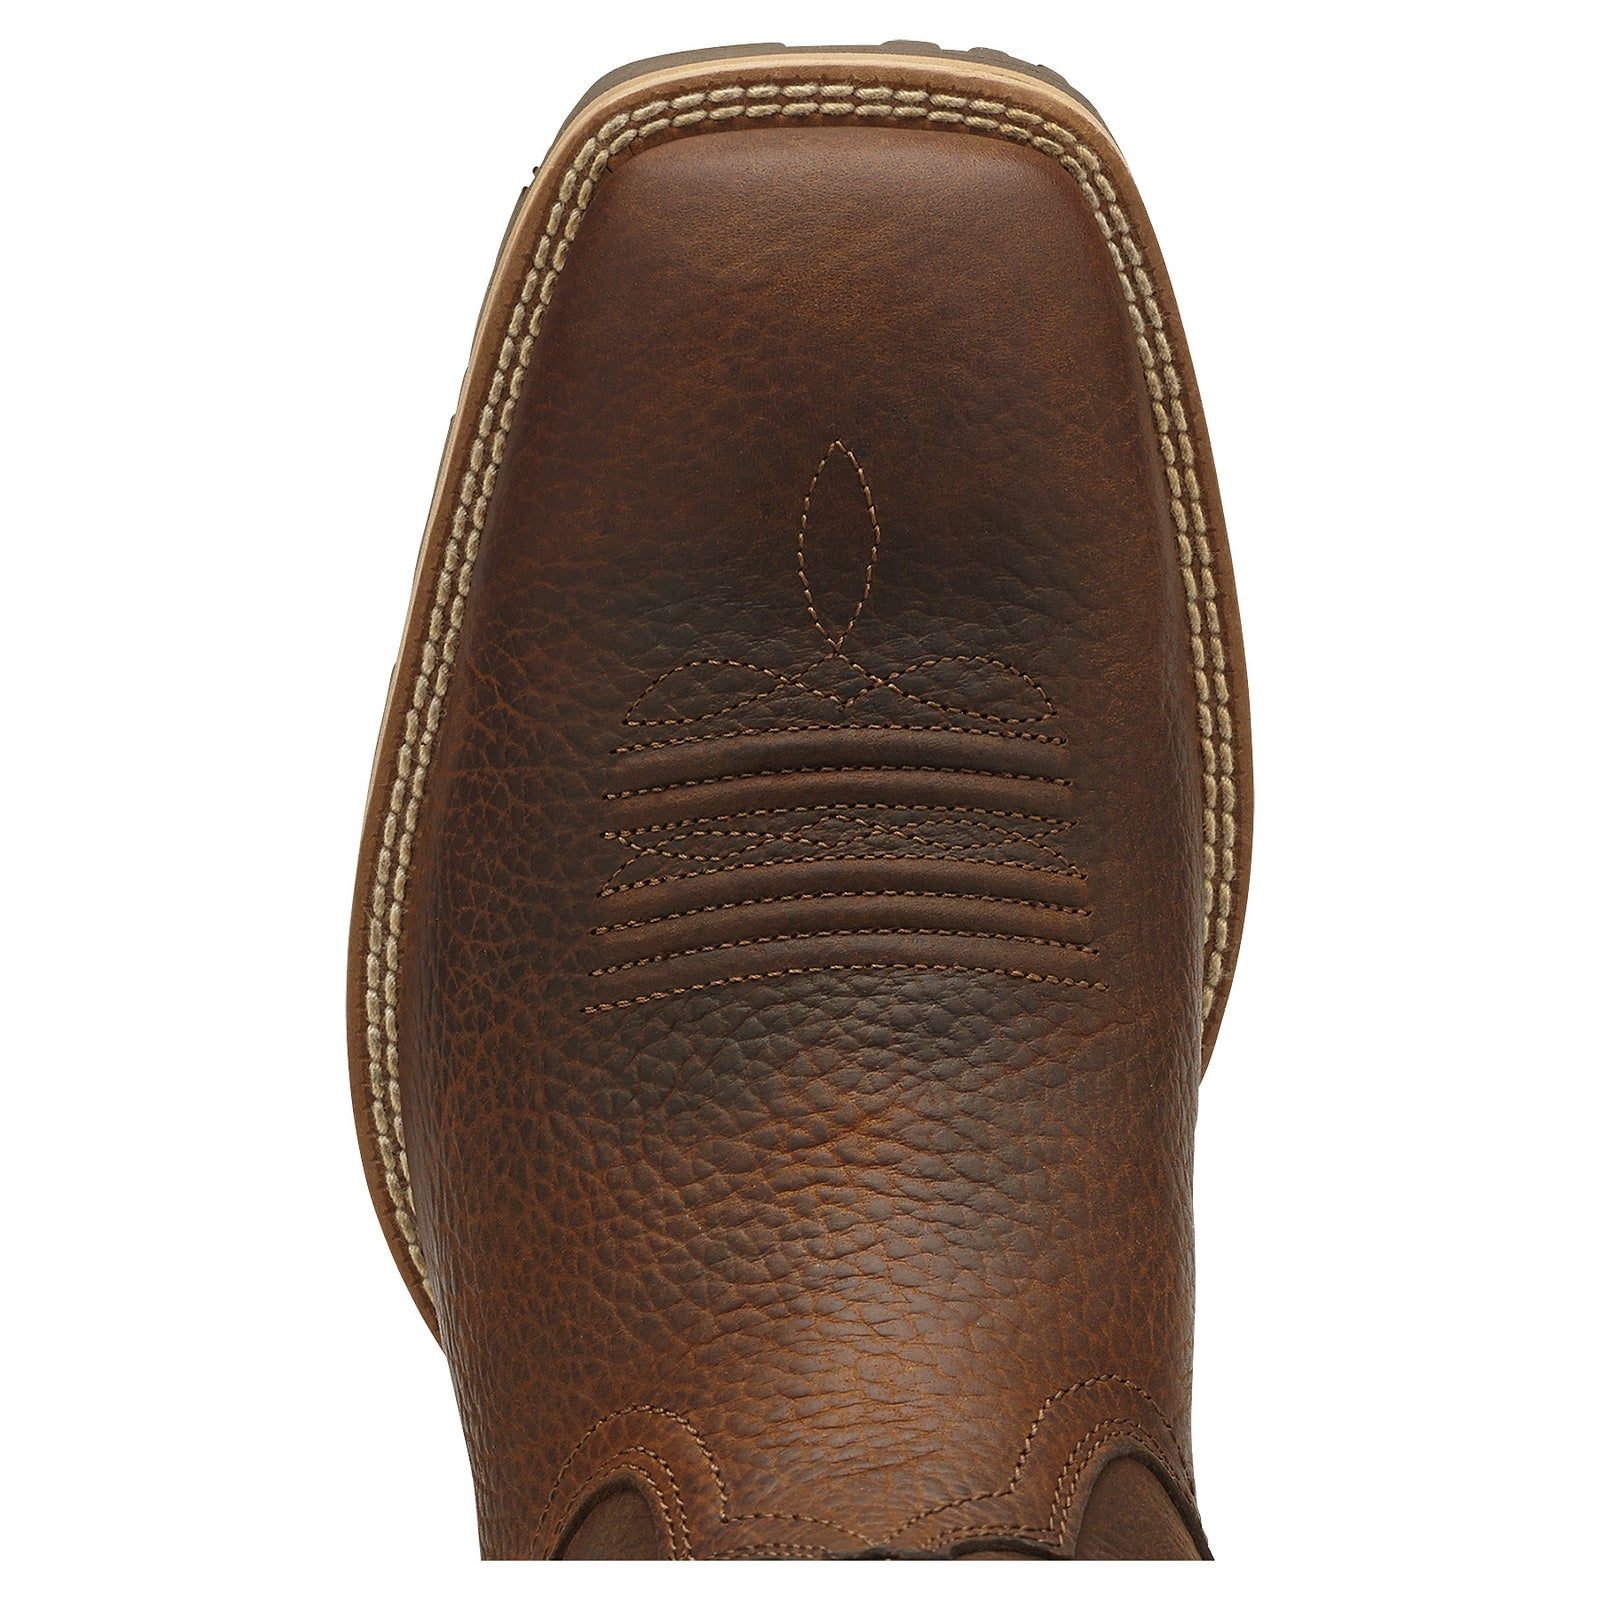 Ariat Men's Hybrid Rancher Square Toe Boot Brown Oiled Rowdy - VaqueroBoots.com - 4